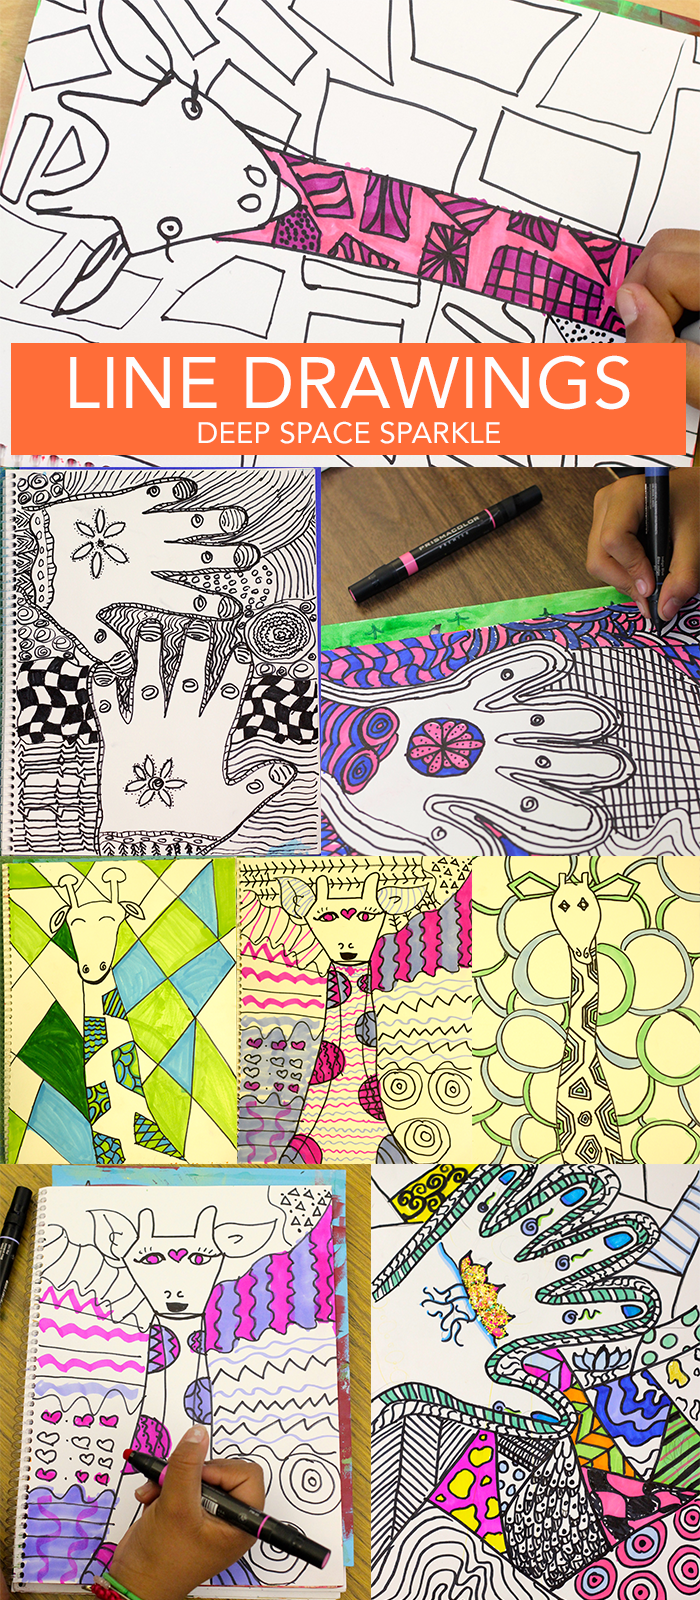 The Sketchbook Project: Line & Color Drawings